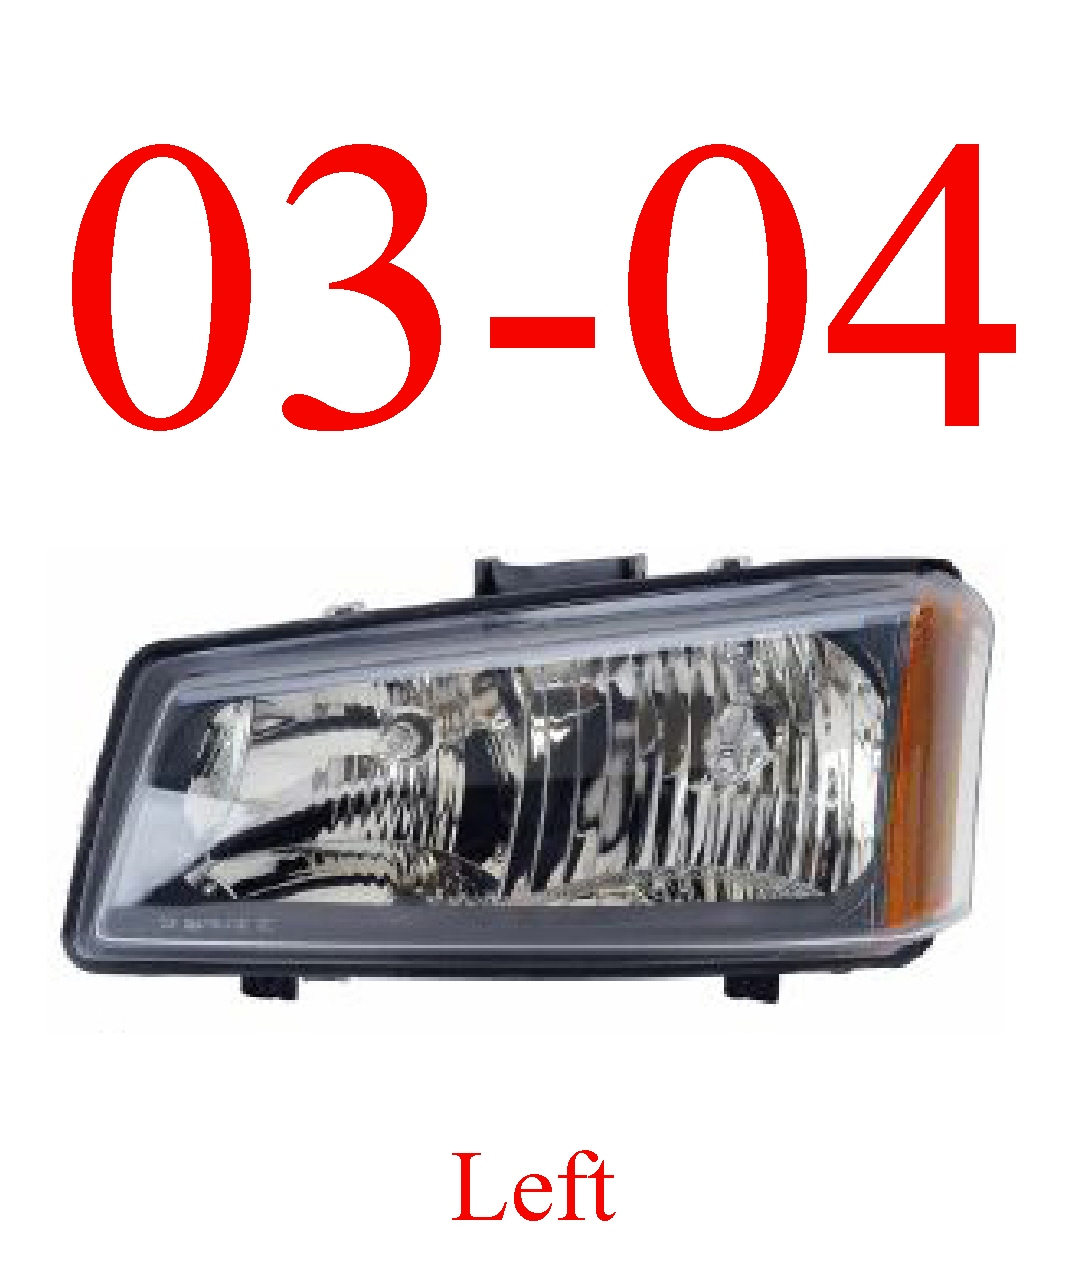 03-04 Chevy Left Head Light, Silverado, Avalanche